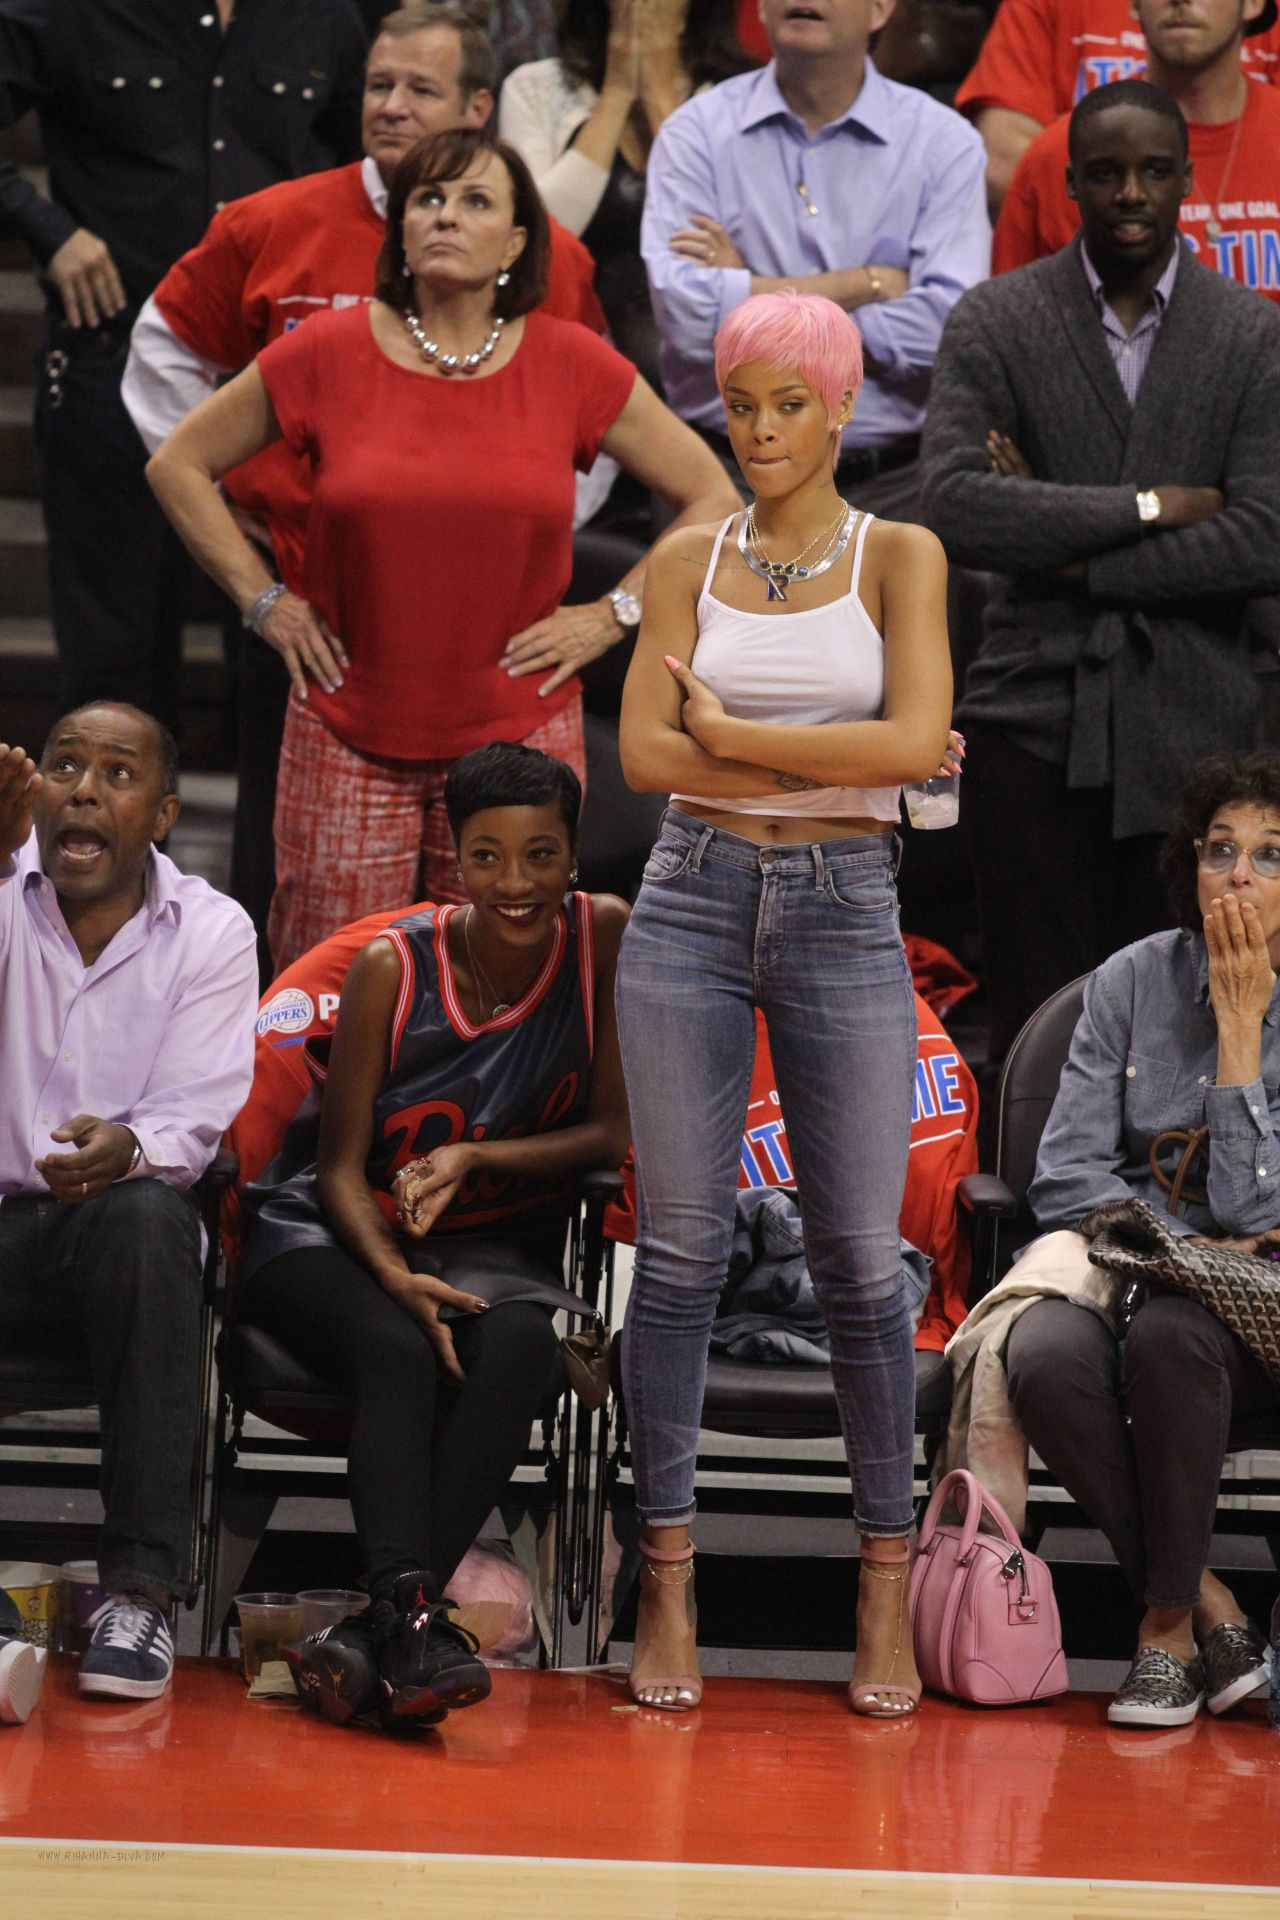 Rihanna At The Clippers Game In Los Angeles May 2014